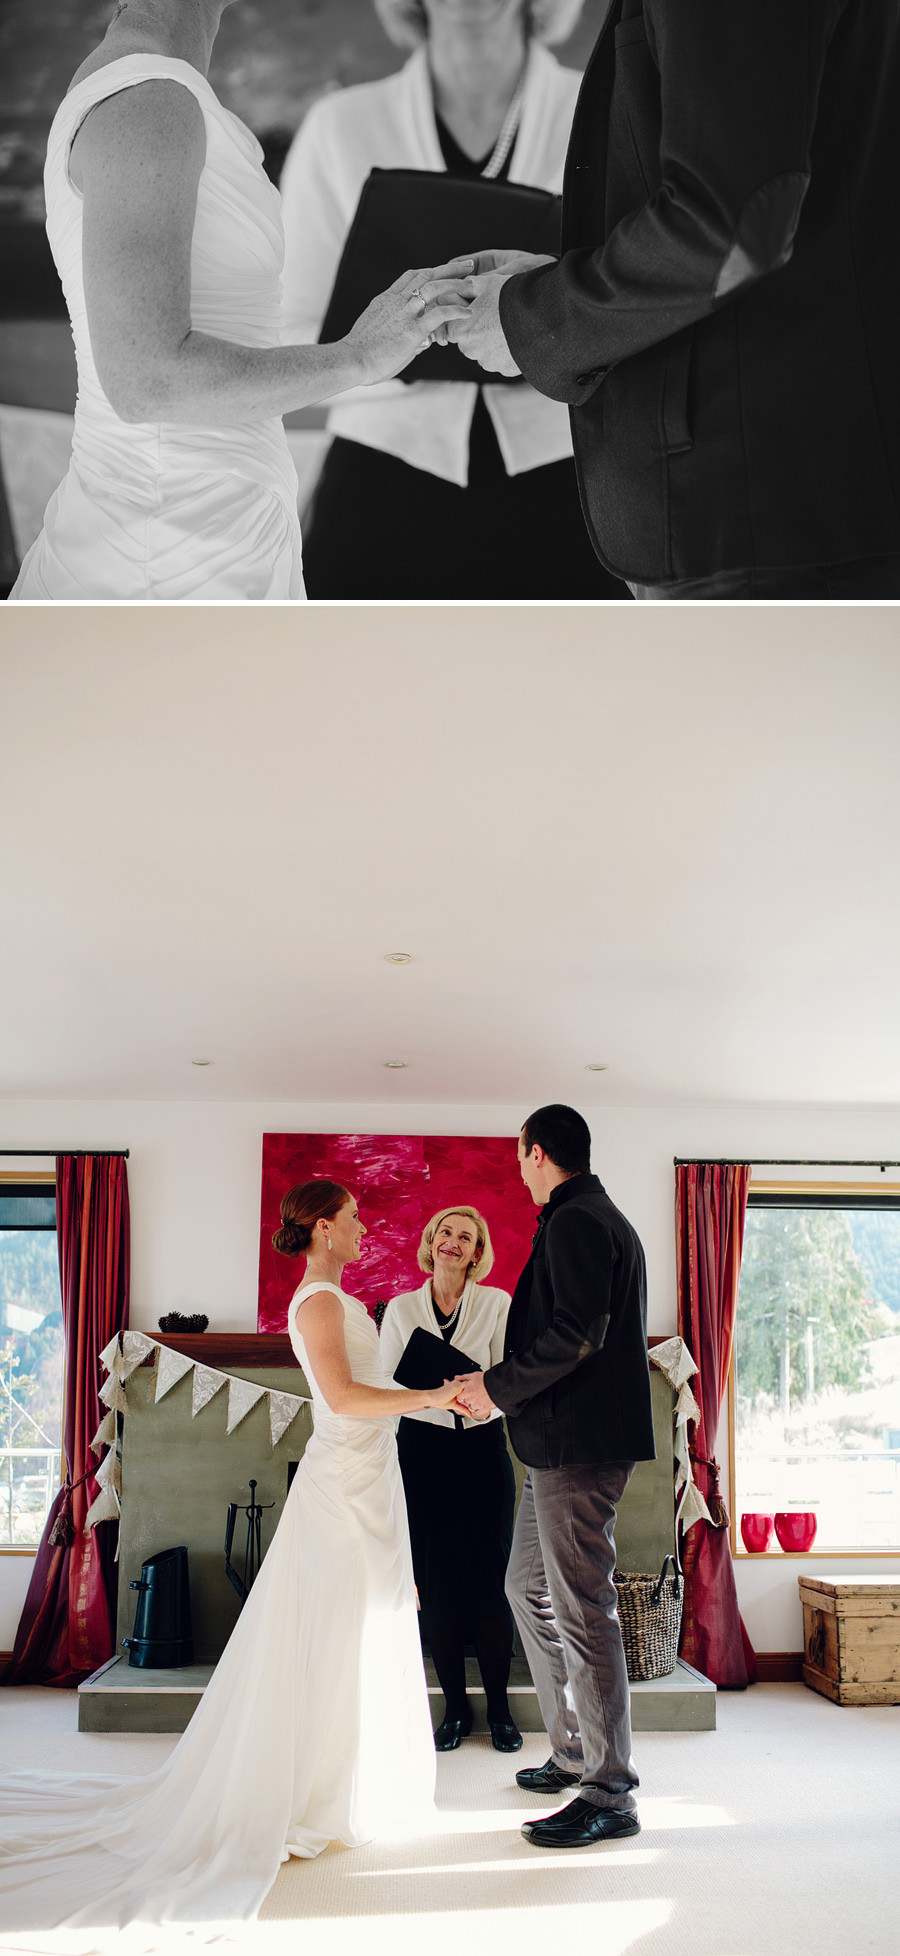 Otago Wedding Photographers: Ceremony